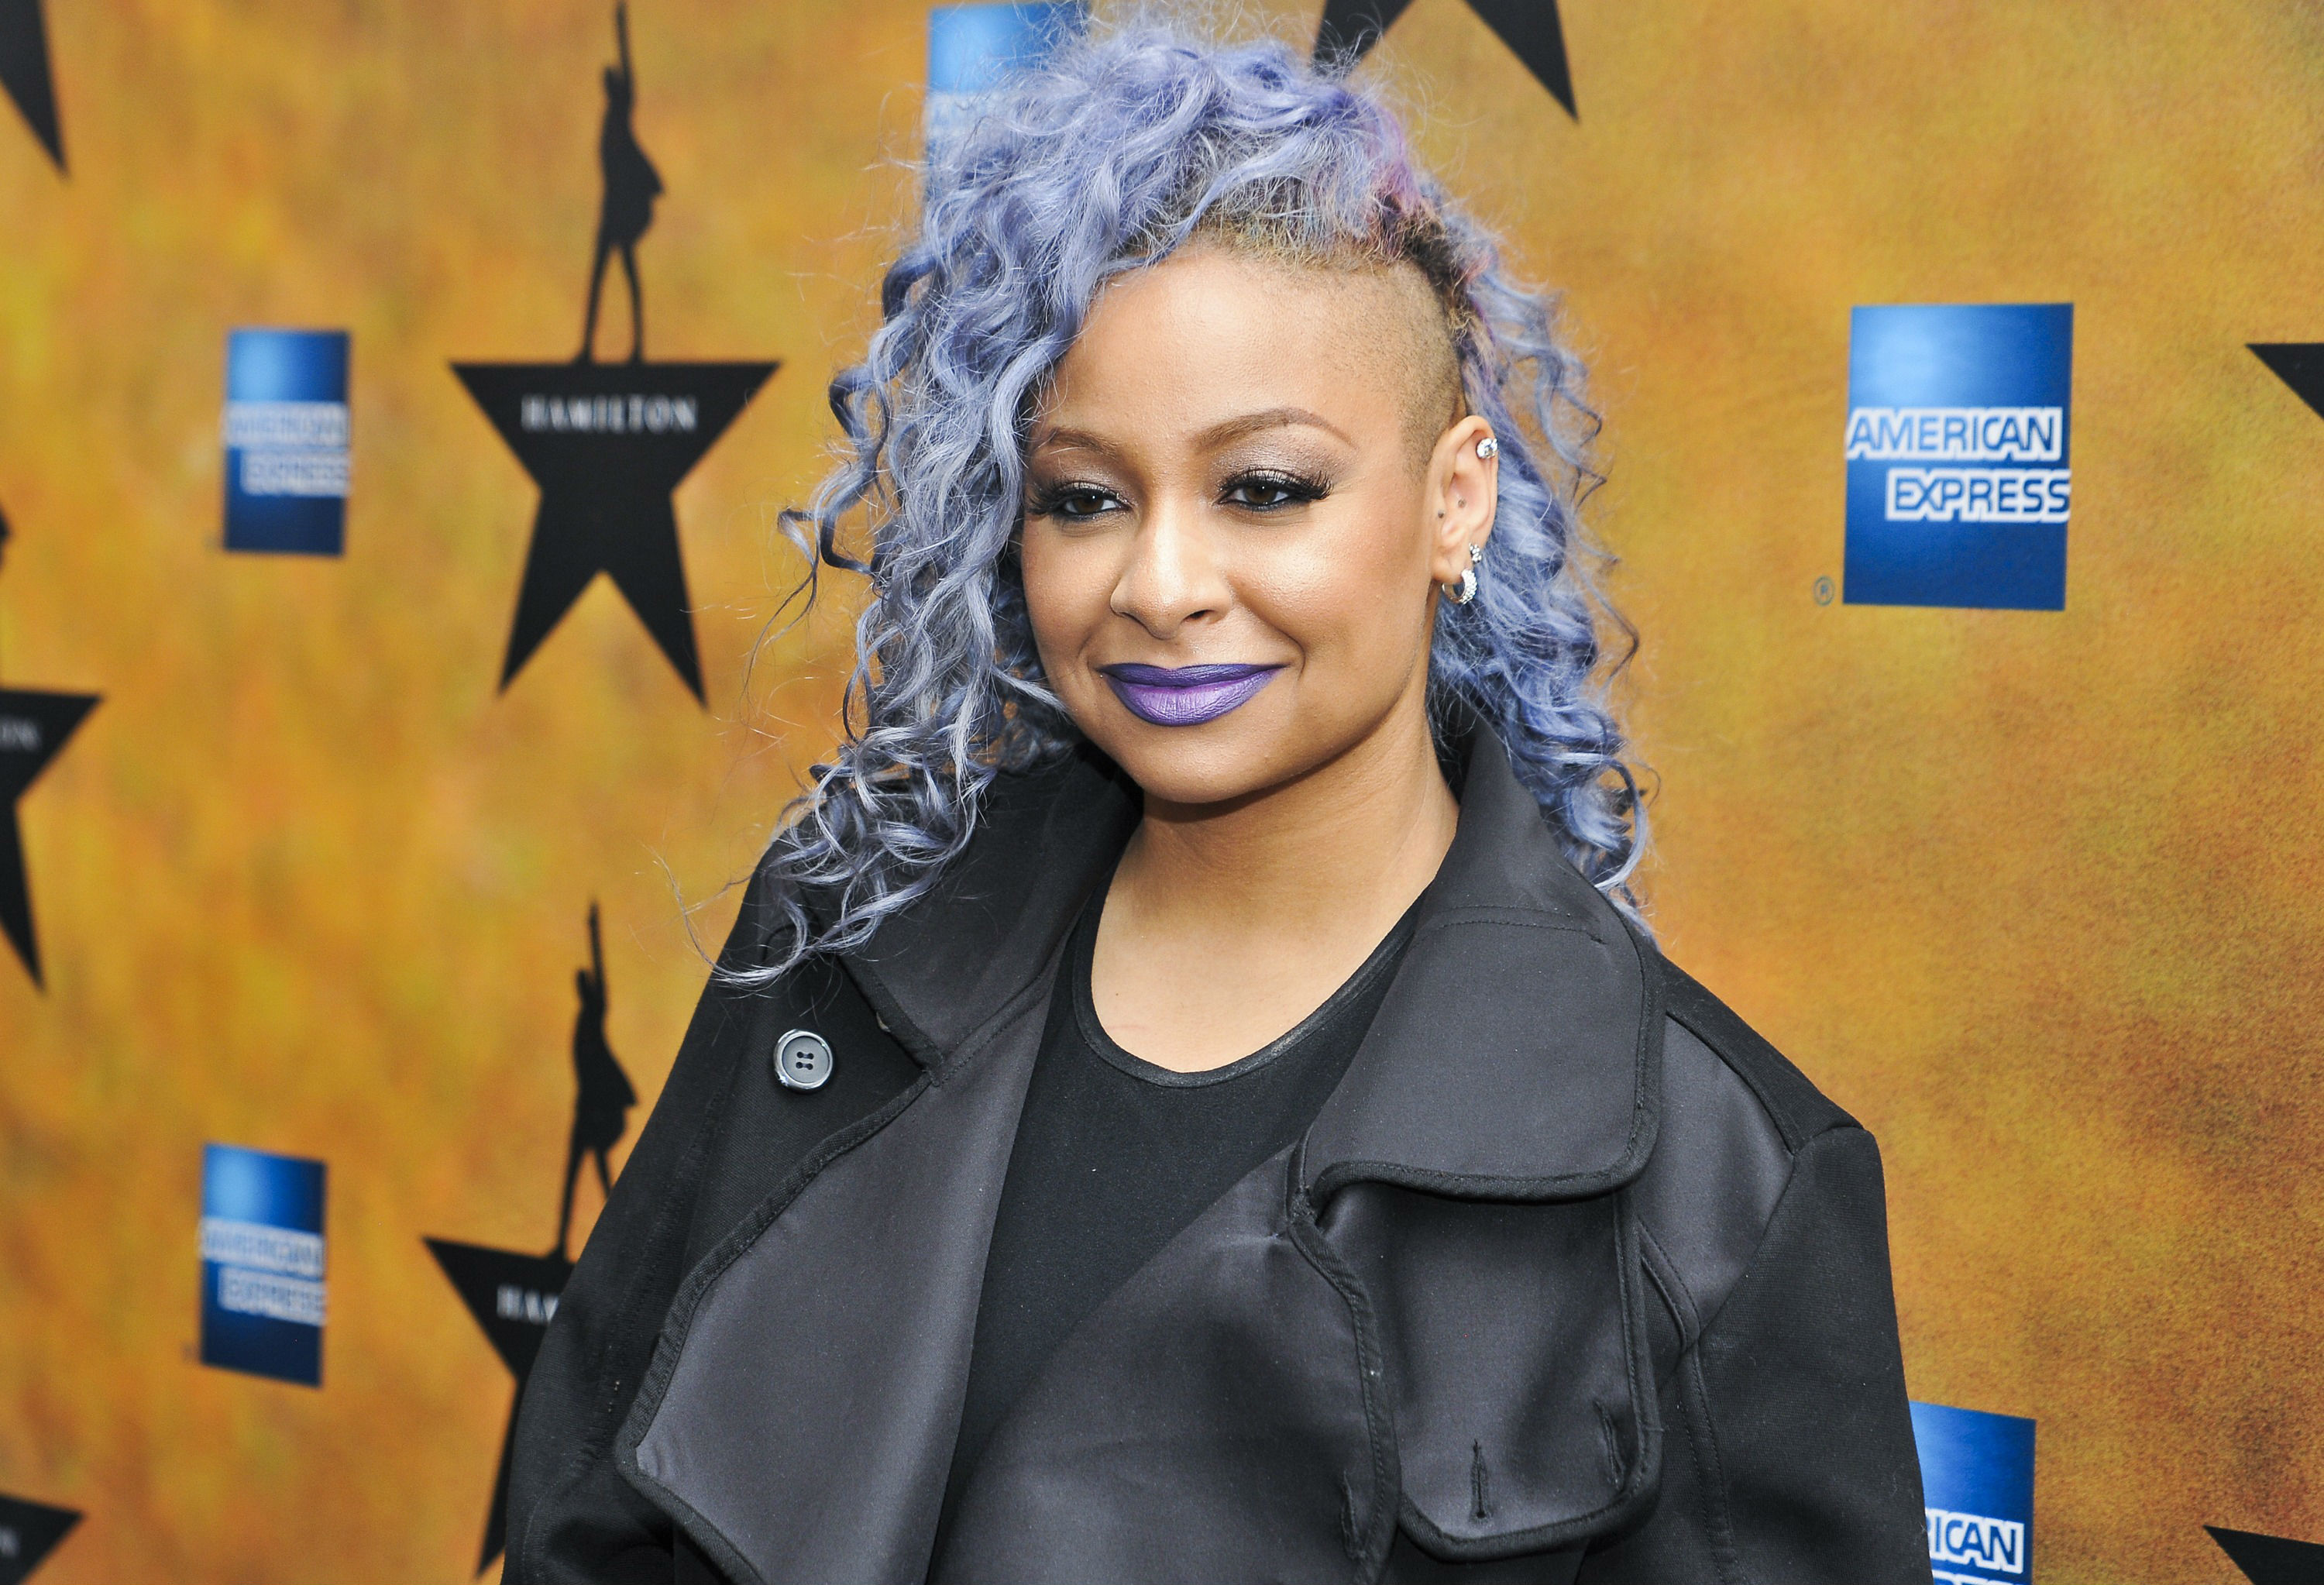 Raven Symone Enough With The Foolish Comments Already Vibe Com